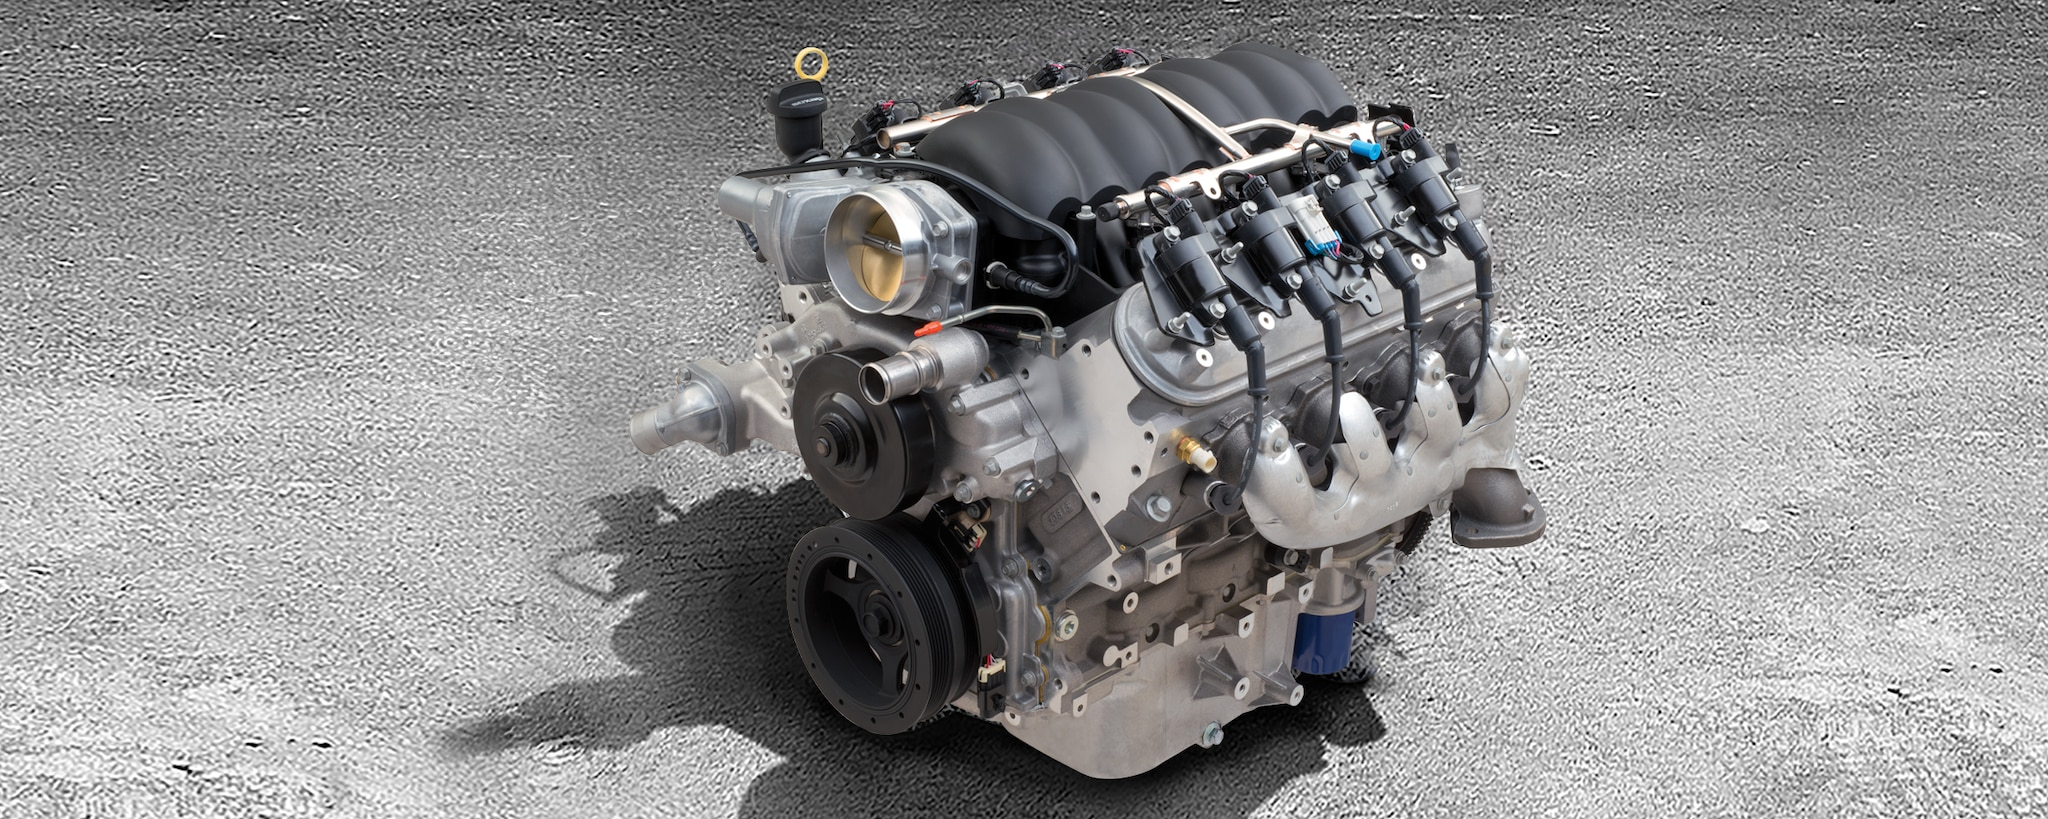 Cp Engines Detail Ls Masthead on Motor Crate Engines Chevy